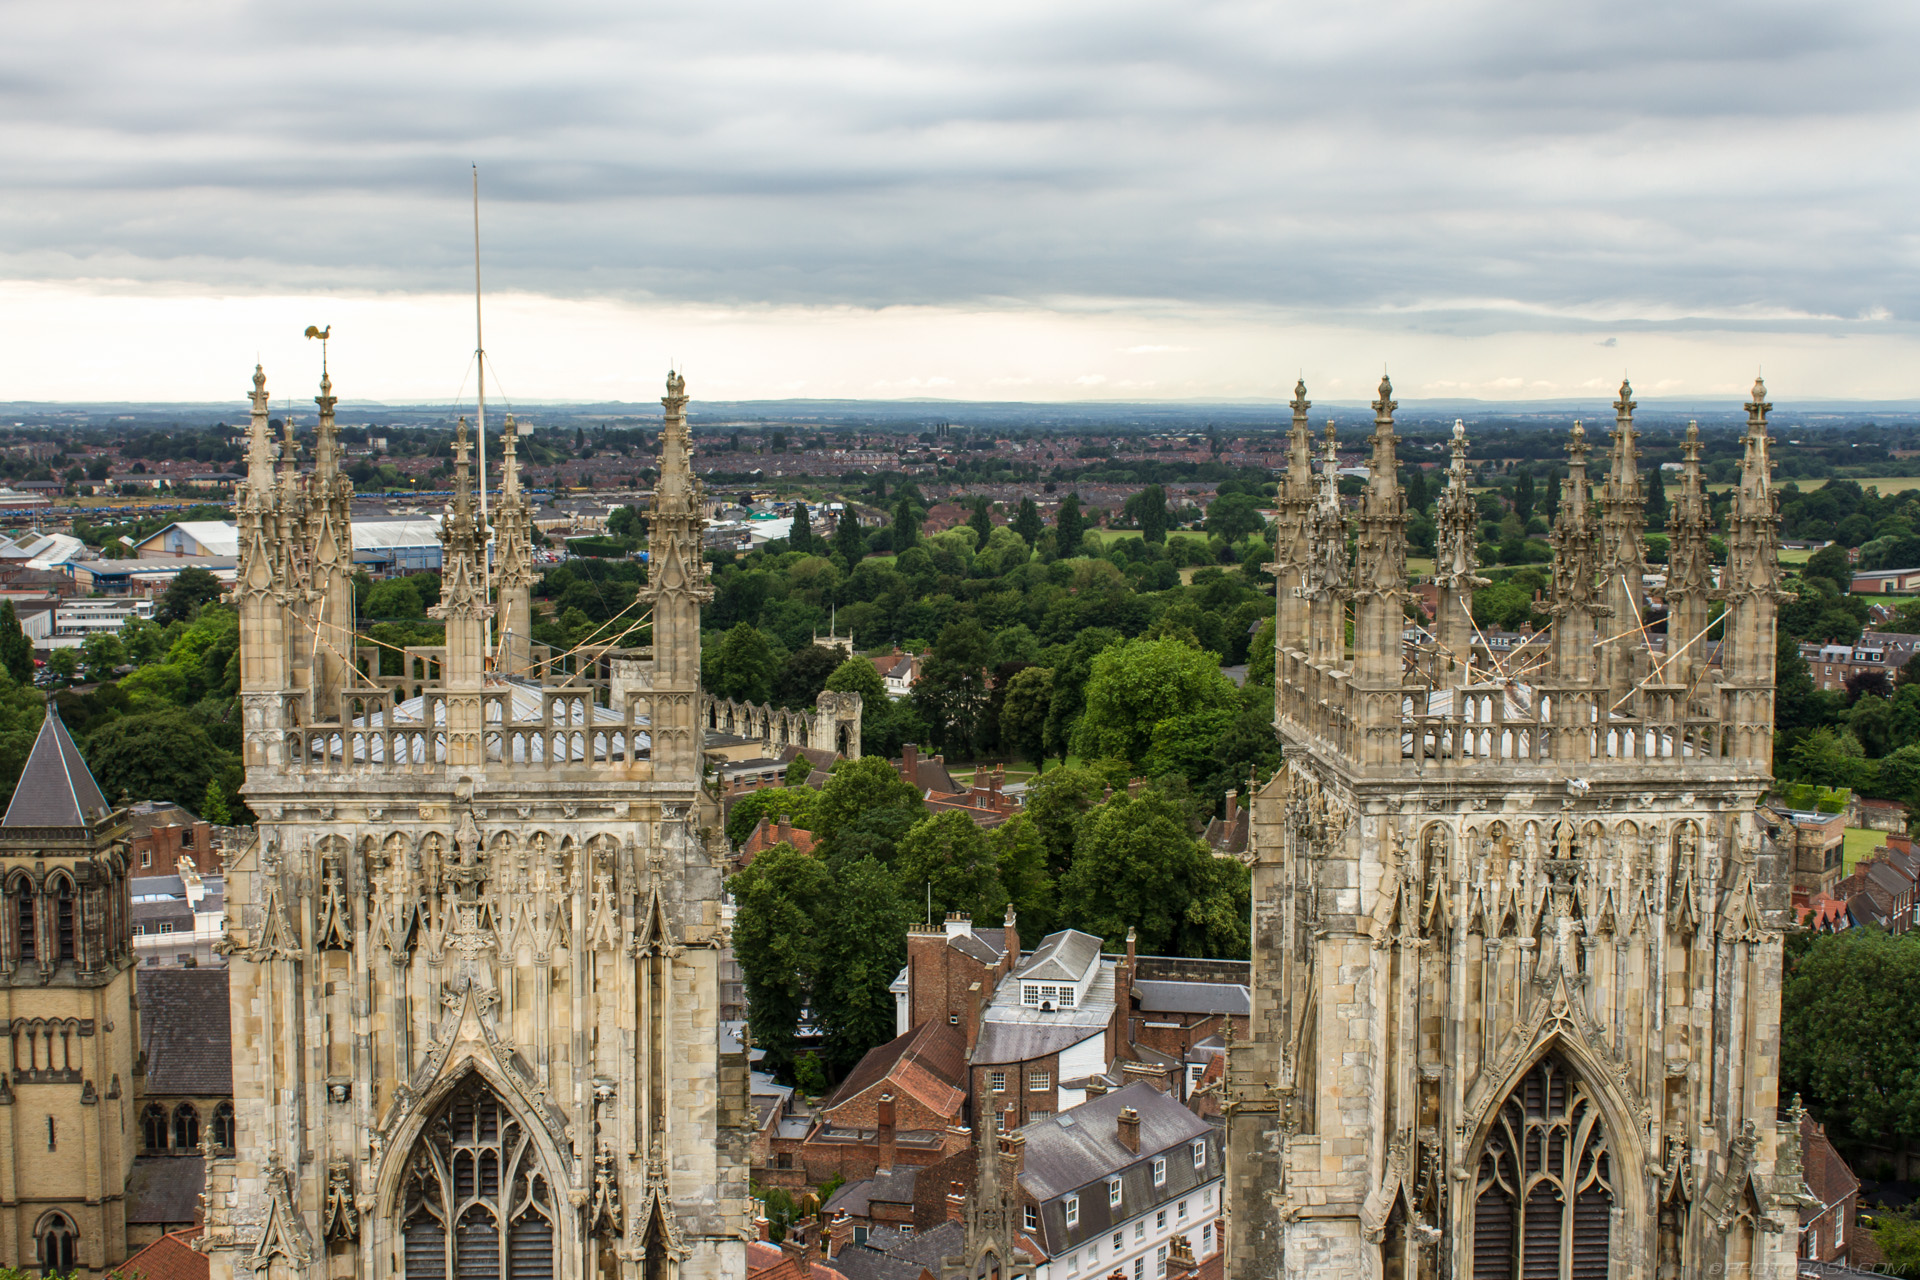 http://photorasa.com/yorkminster-cathedral/two-towers/